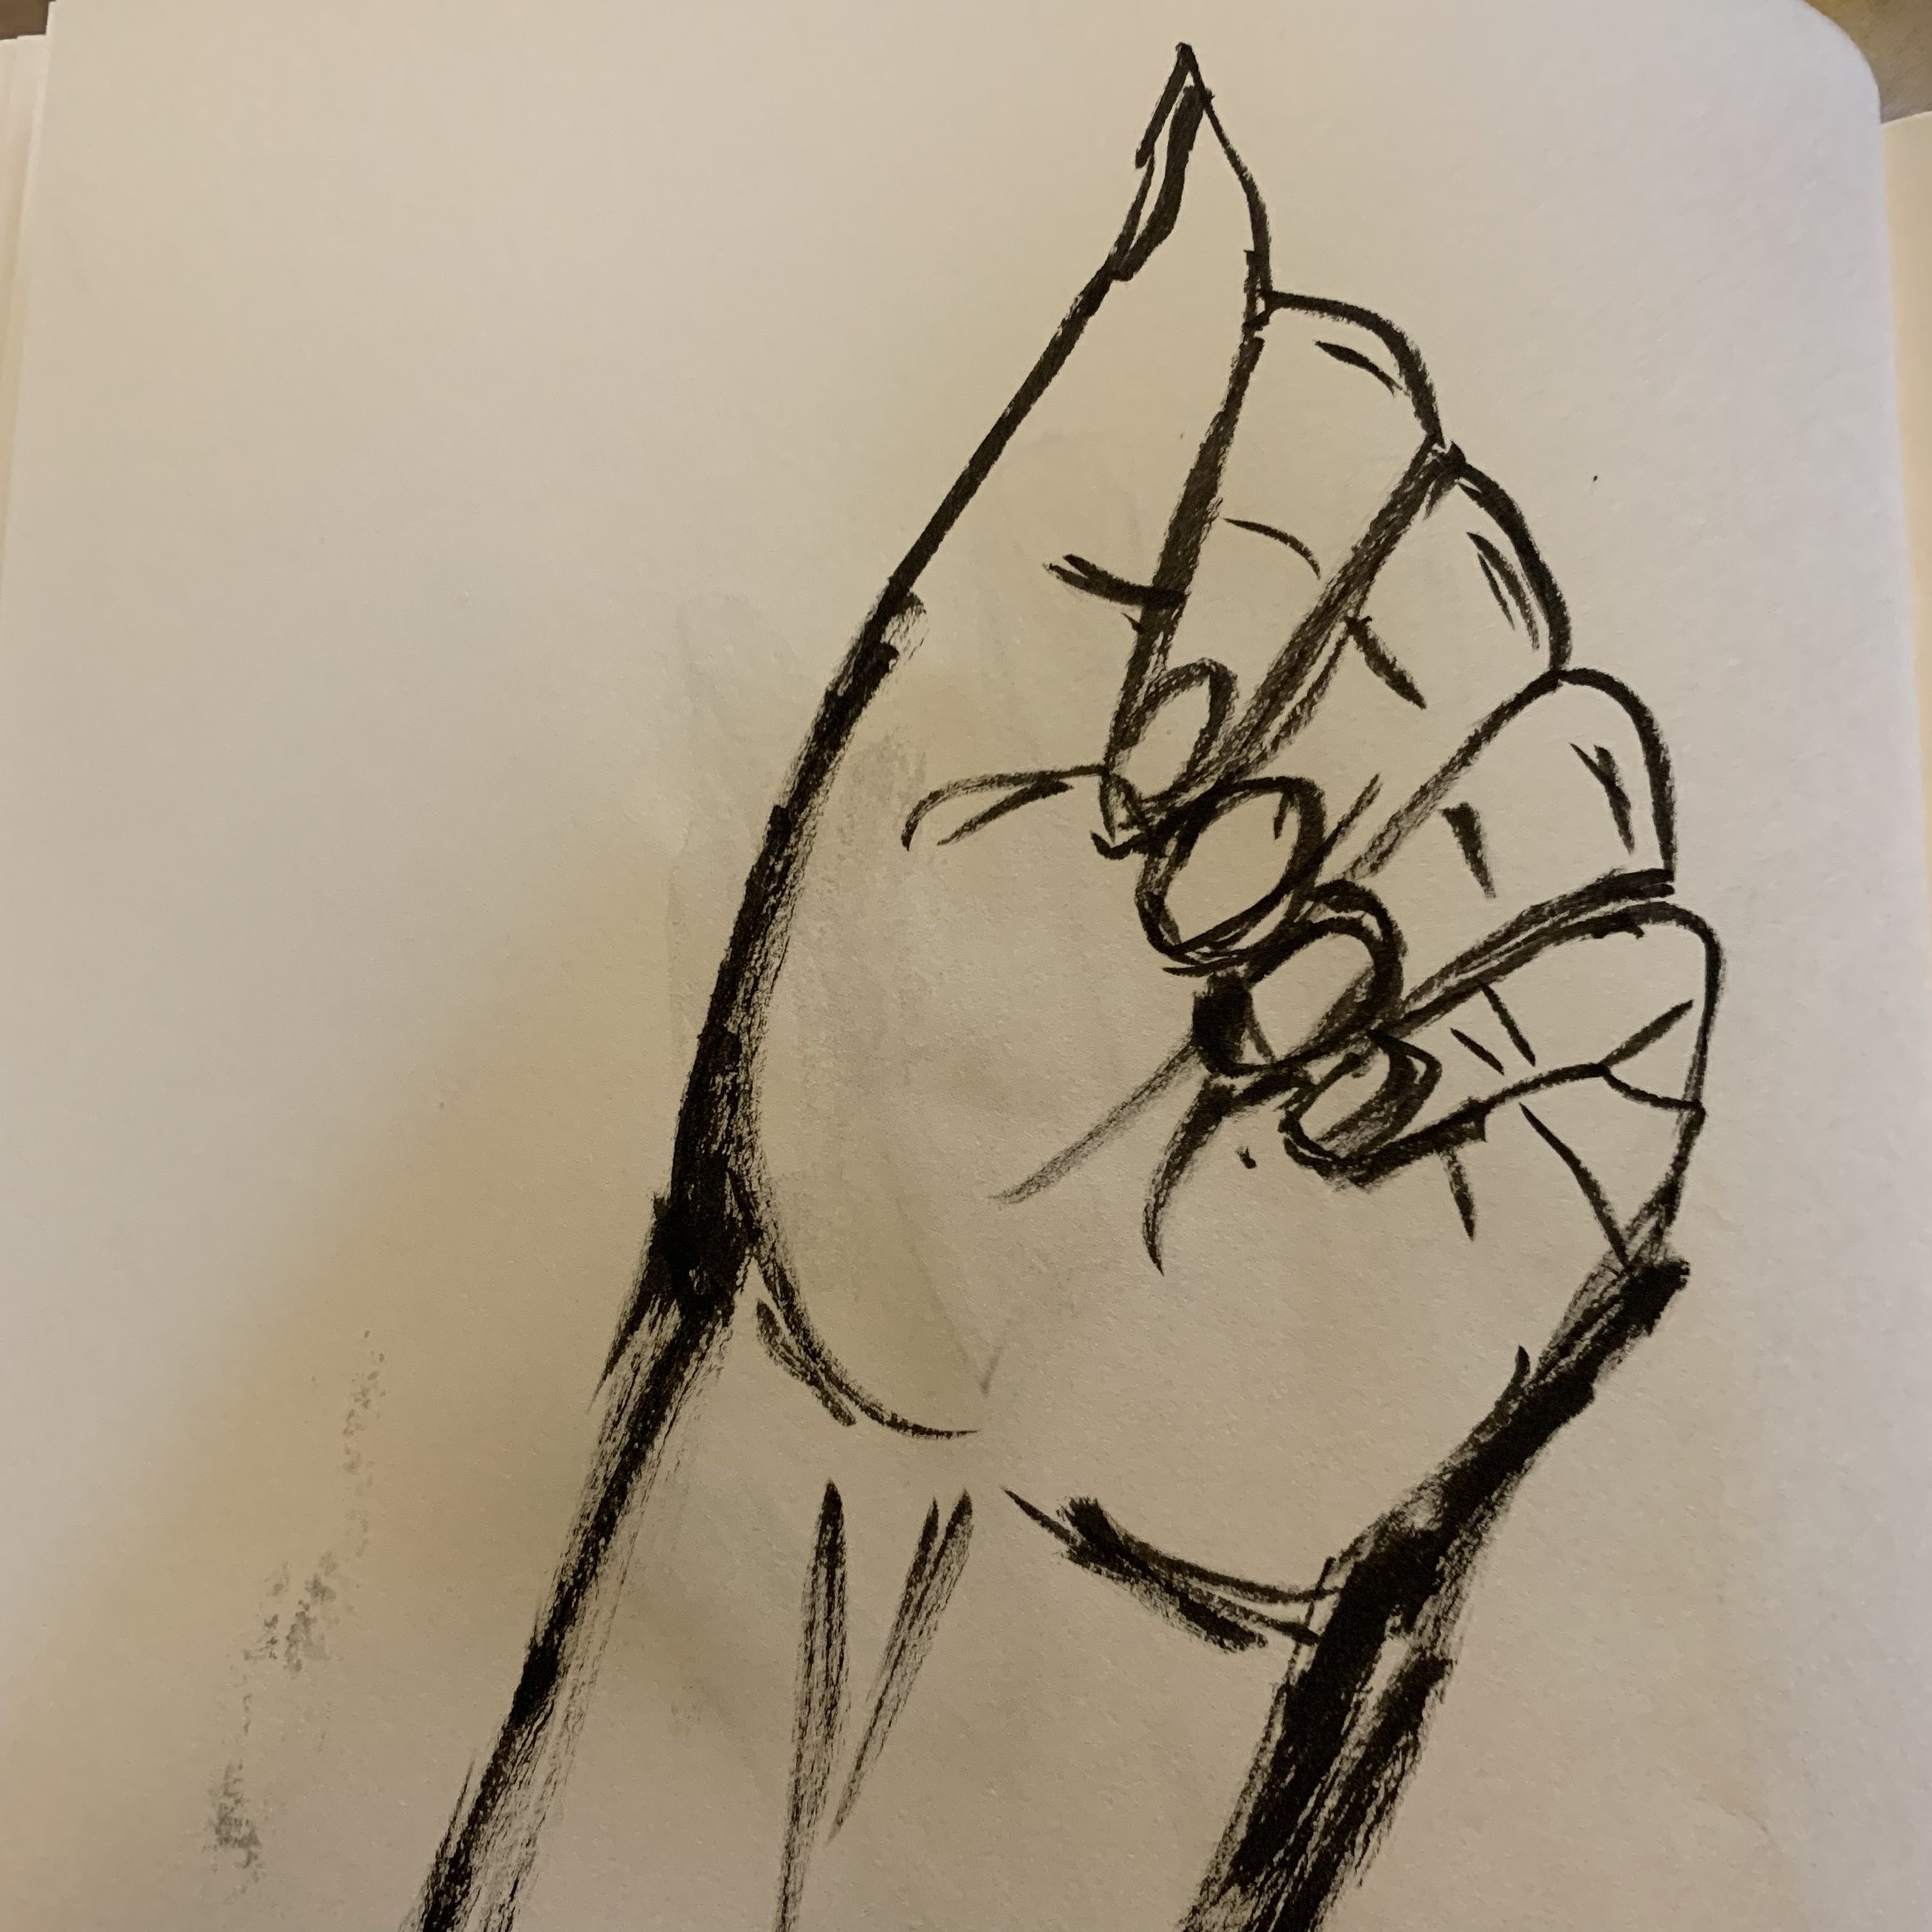 Evidently this is the only shape my left hand can make.